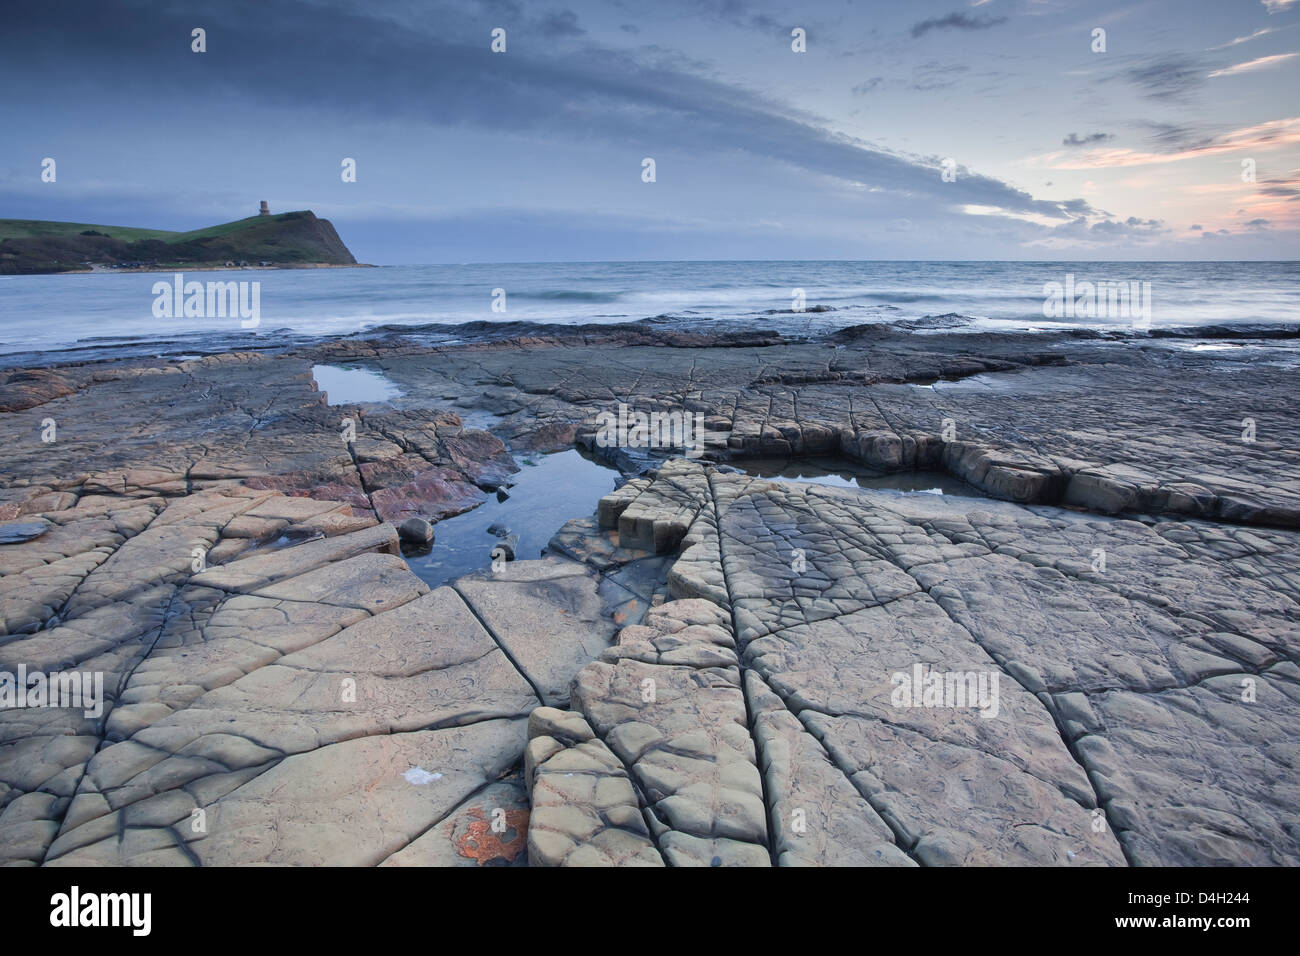 Kimmeridge Bay on the Dorset coast at sunset, Jurassic Coast, UNESCO World Heritage Site, Dorset, England, UK - Stock Image